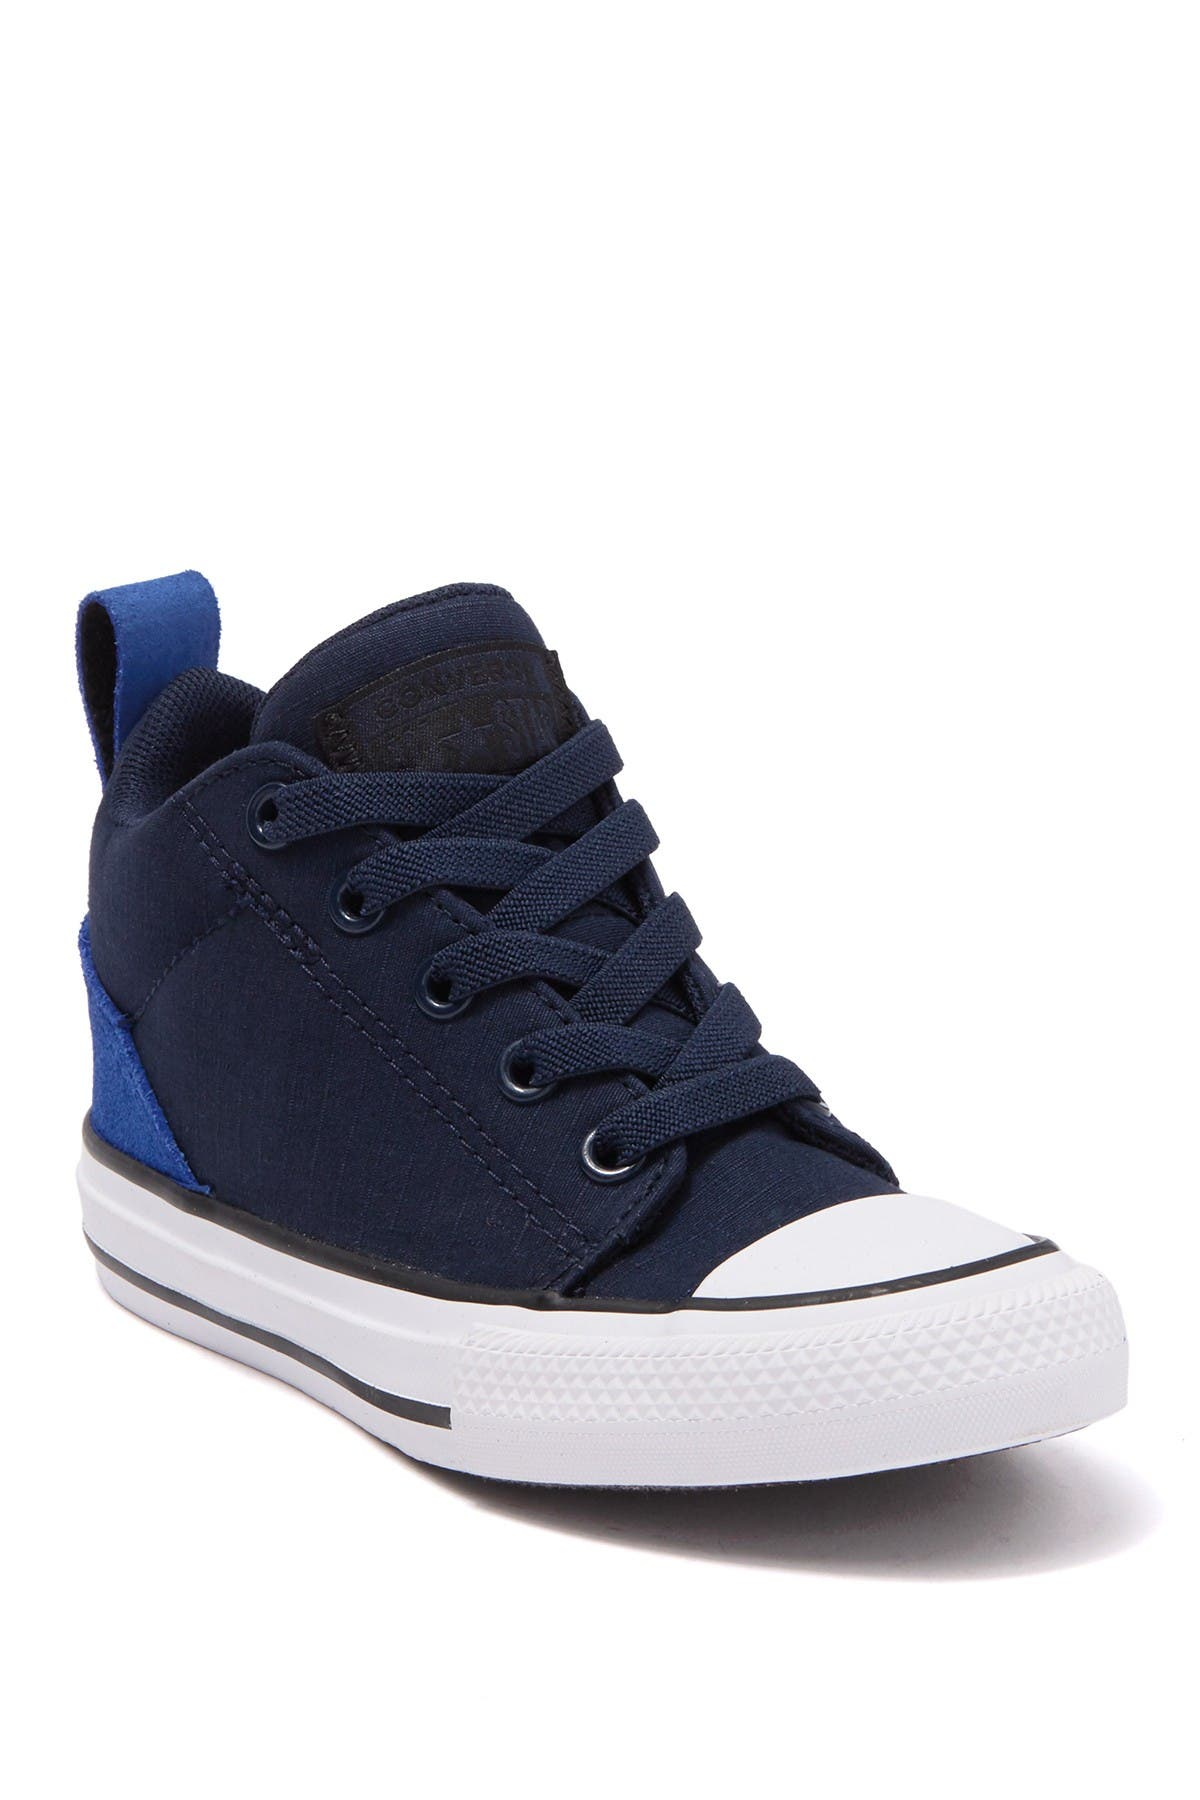 Image of Converse Chuck Taylor All Star Ollie Sneaker